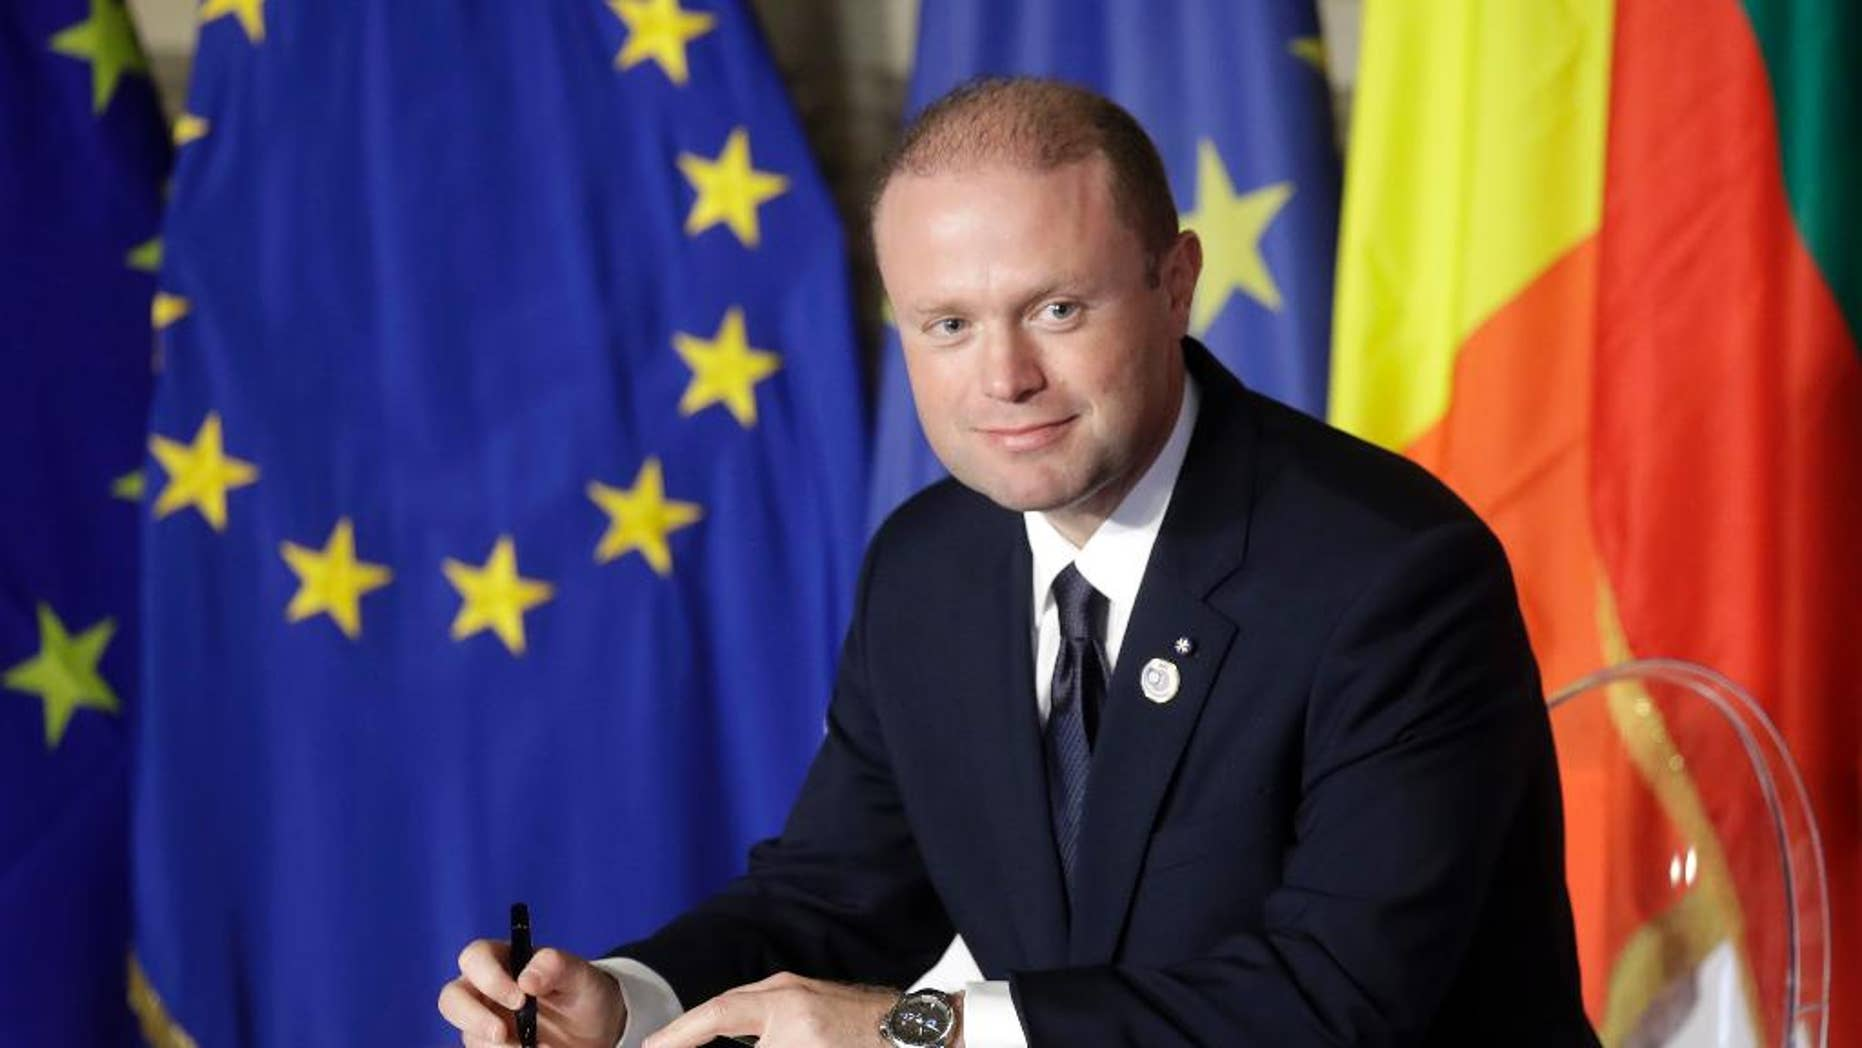 FILE - In this Saturday, March 25, 2017 file photo, Malta's Prime Minister Joseph Muscat signs a declaration during an EU summit meeting in the Palazzo dei Conservatori in Rome. Malta's Prime Minister Joseph Muscat has called elections for June 3, a year early, to test his popularity amid a scandal swirling around his family. With the announcement on Monday, May 1, Muscat defied opposition demands for his resignation. (AP Photo/Alessandra Tarantino, file)